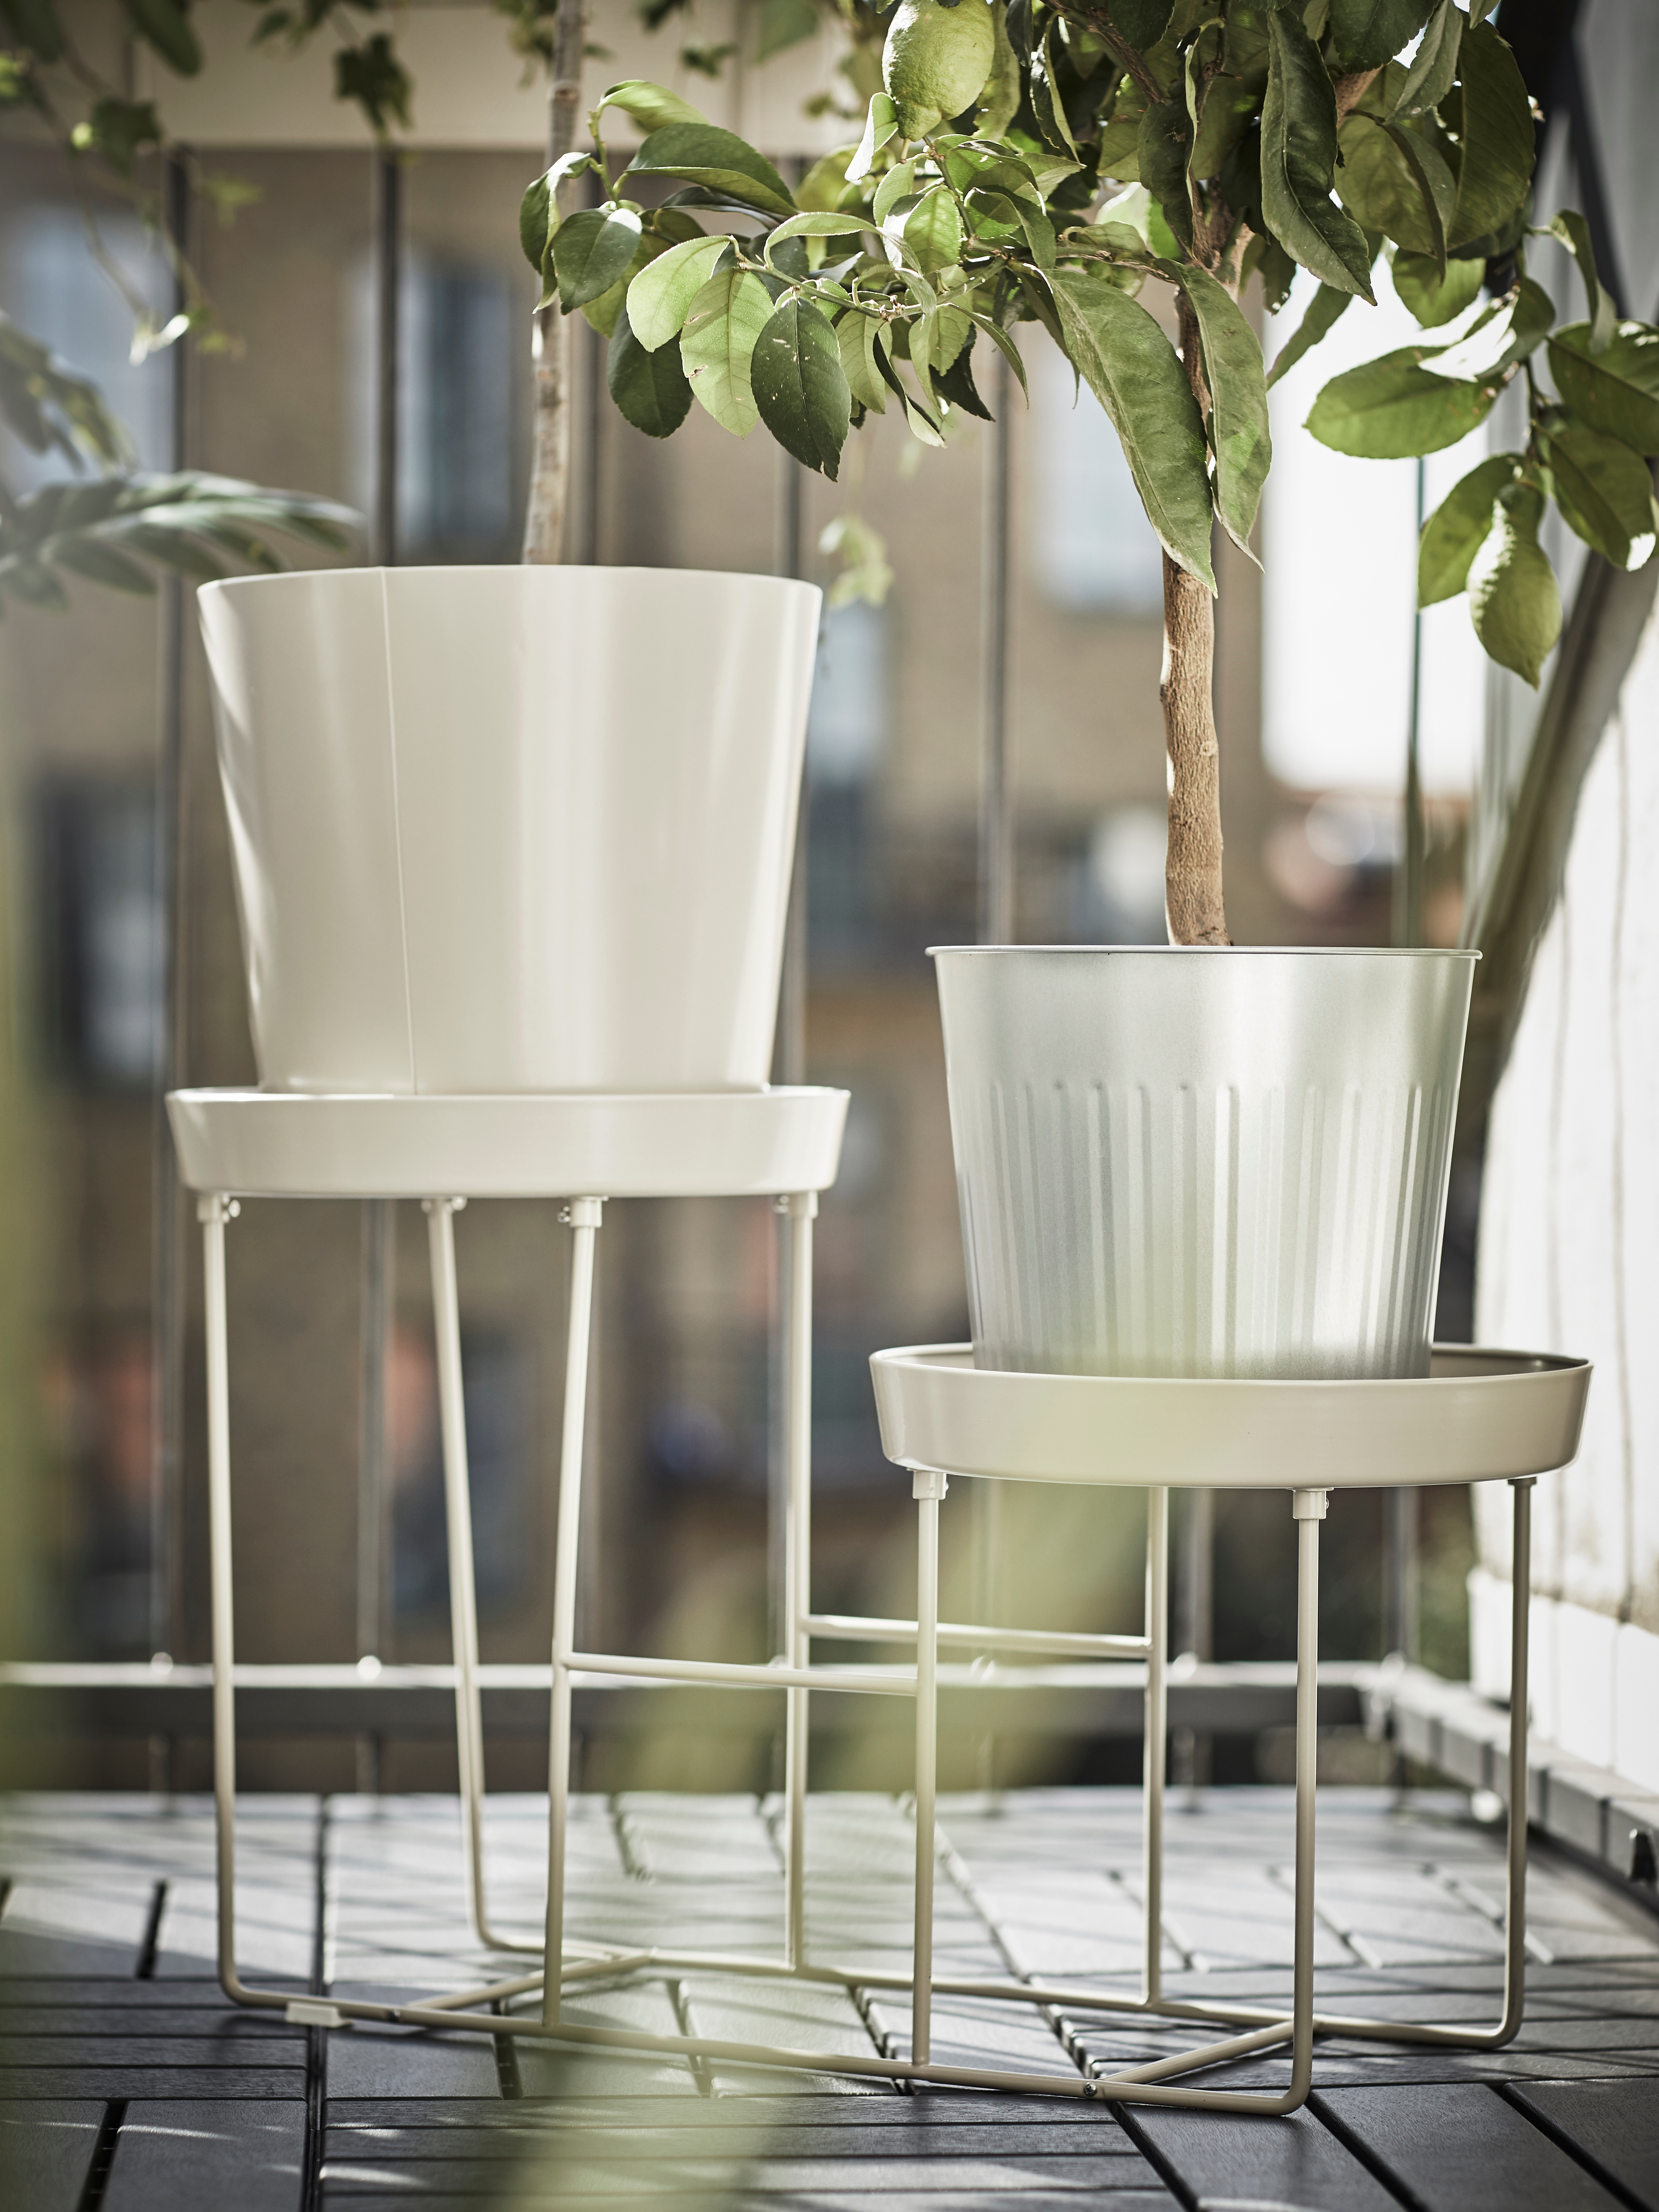 Corner of outdoor space with white plant stand made of galvanised steel, green household plants inside two white pots.